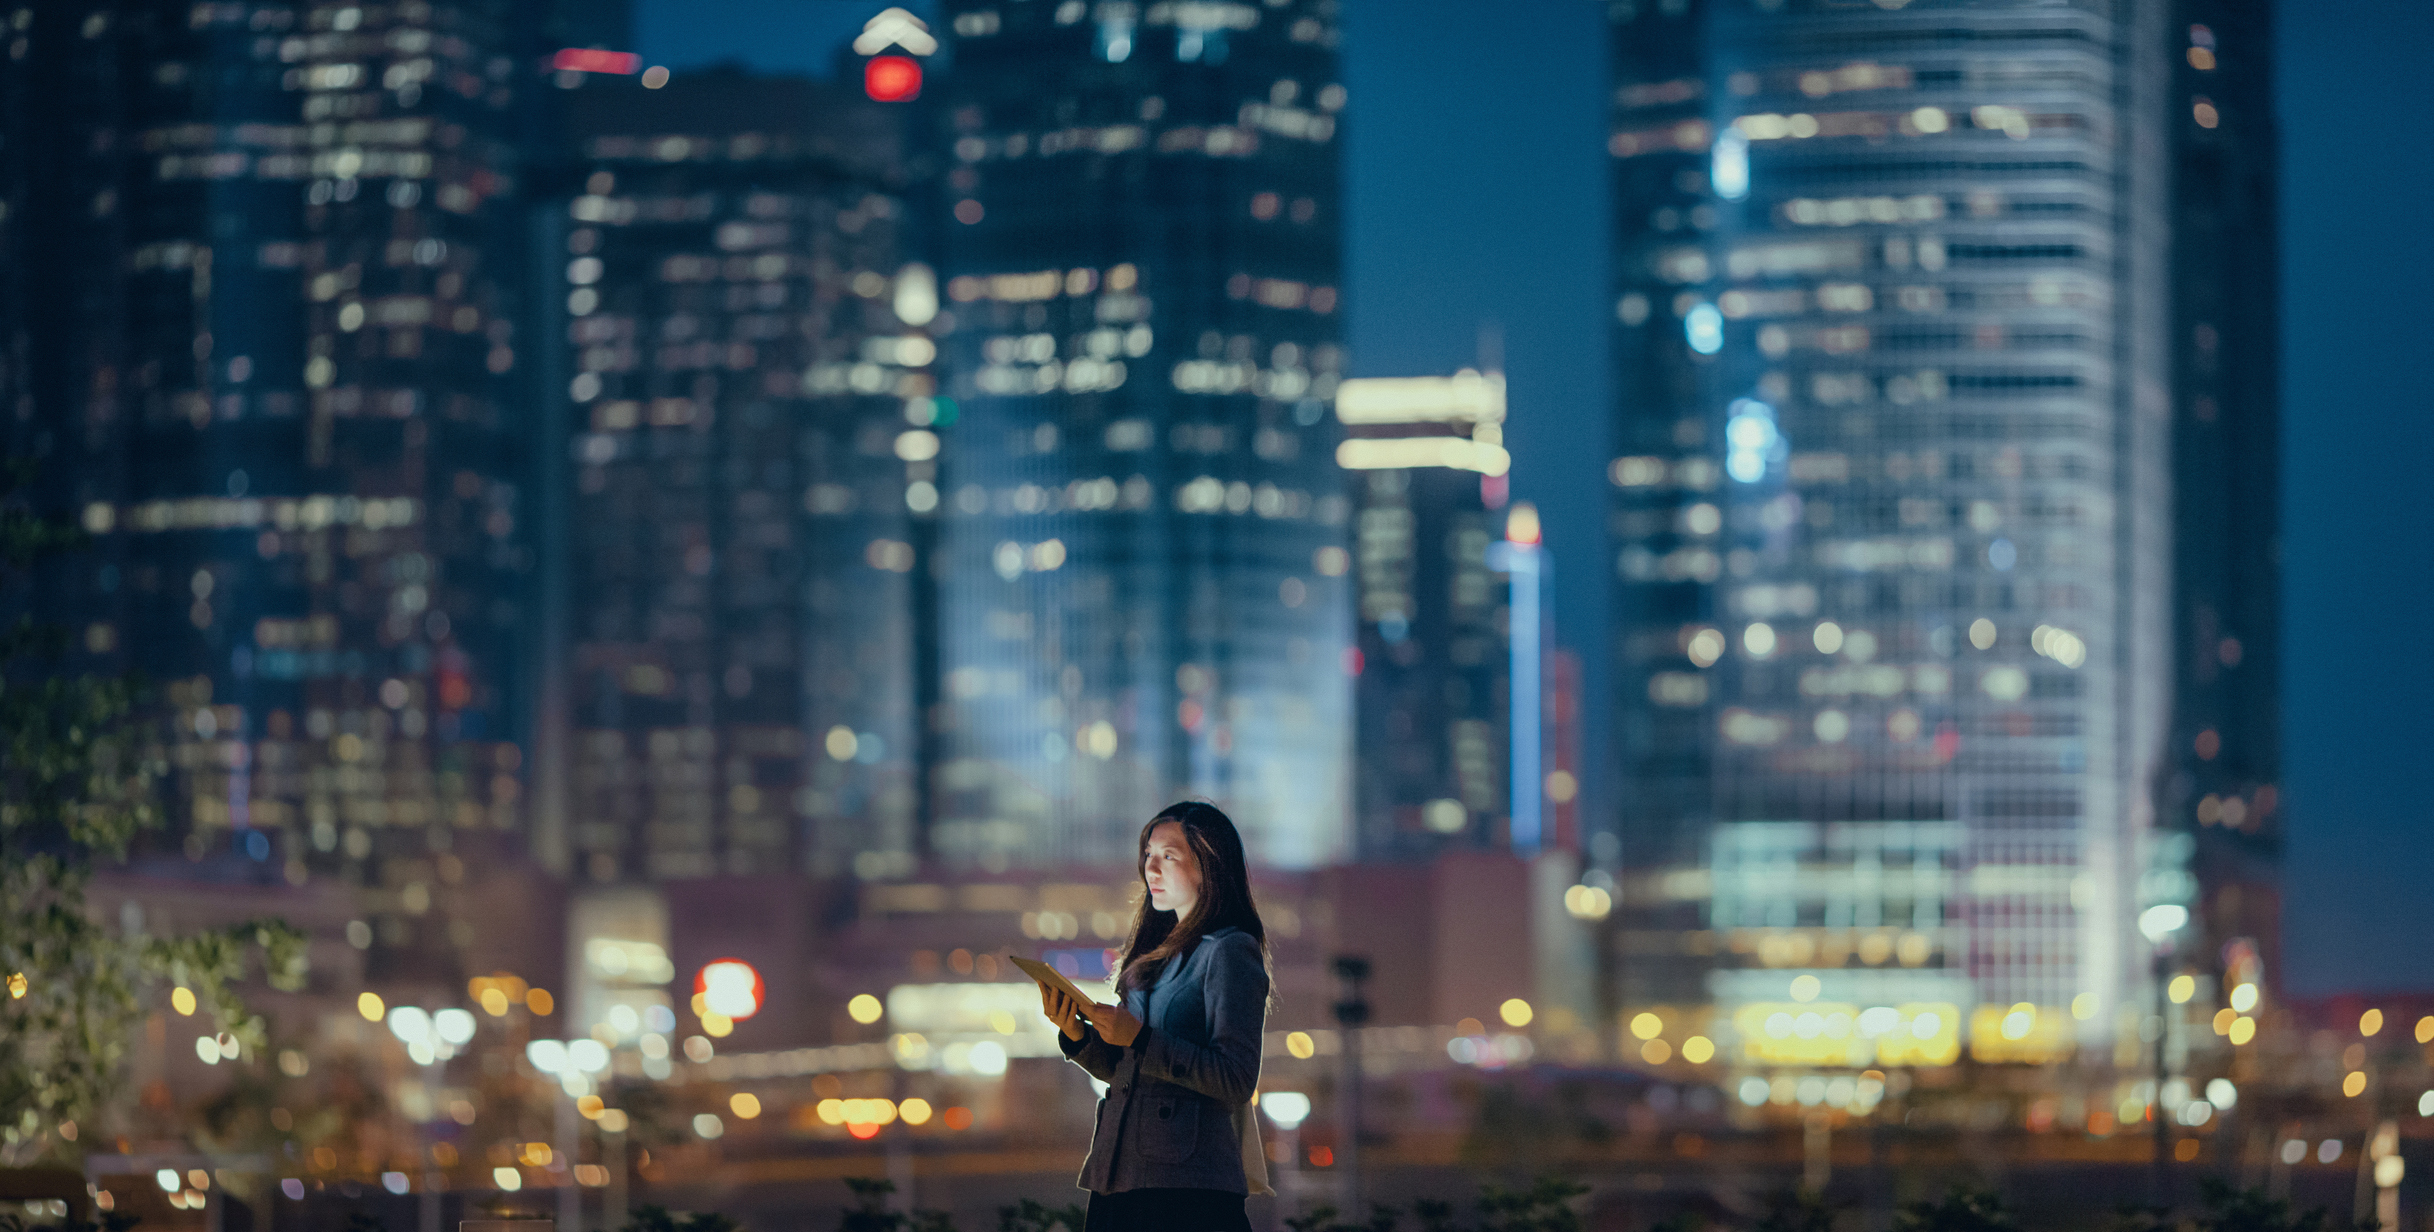 Woman using digital tablet against illuminated corporate skyscrapers at night